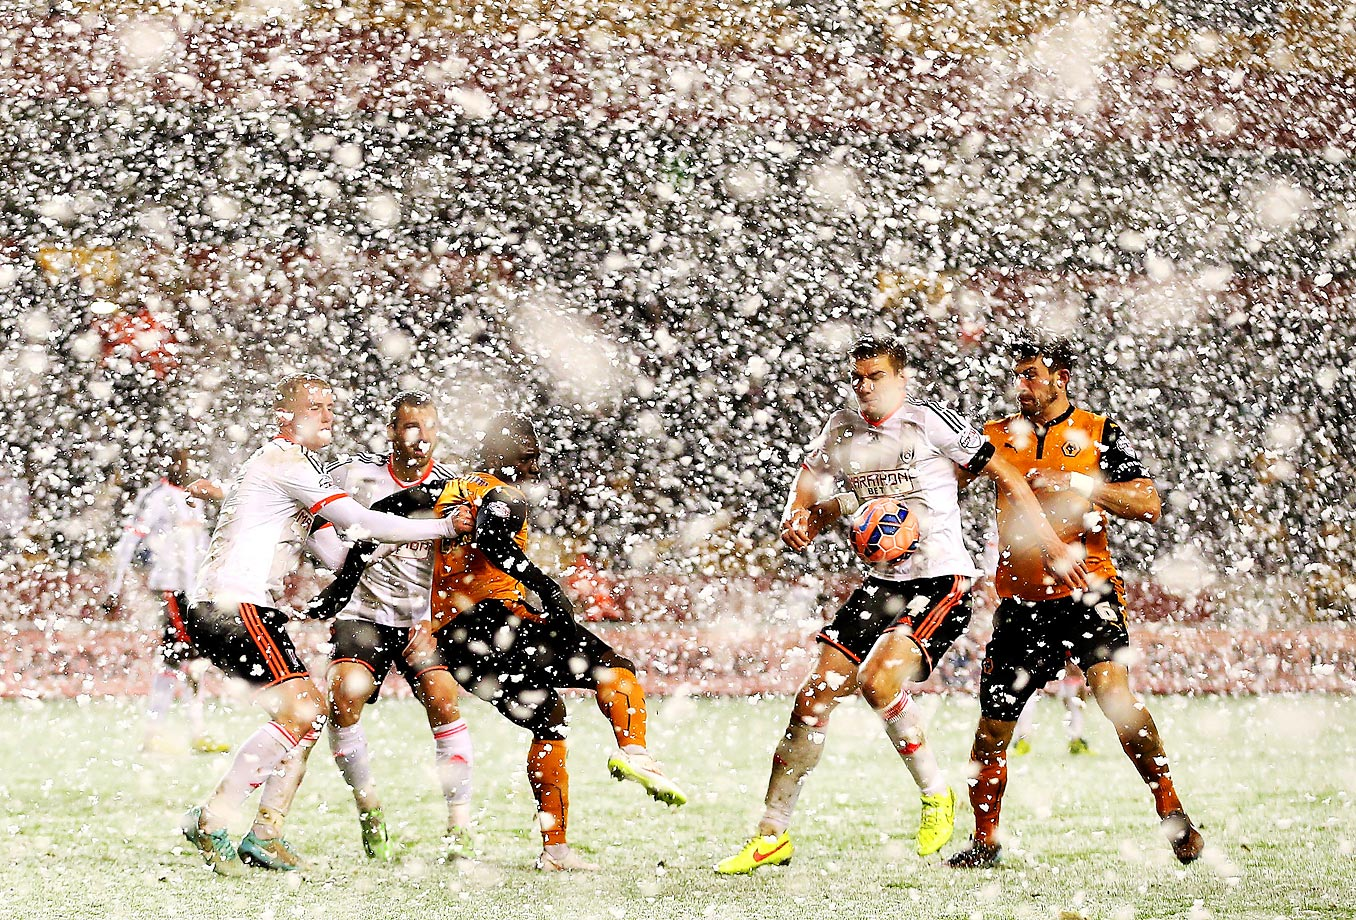 Players battle for the ball as snow falls during the FA Cup third-round replay match between Wolverhampton Wanderers and Fulham at Molineux.